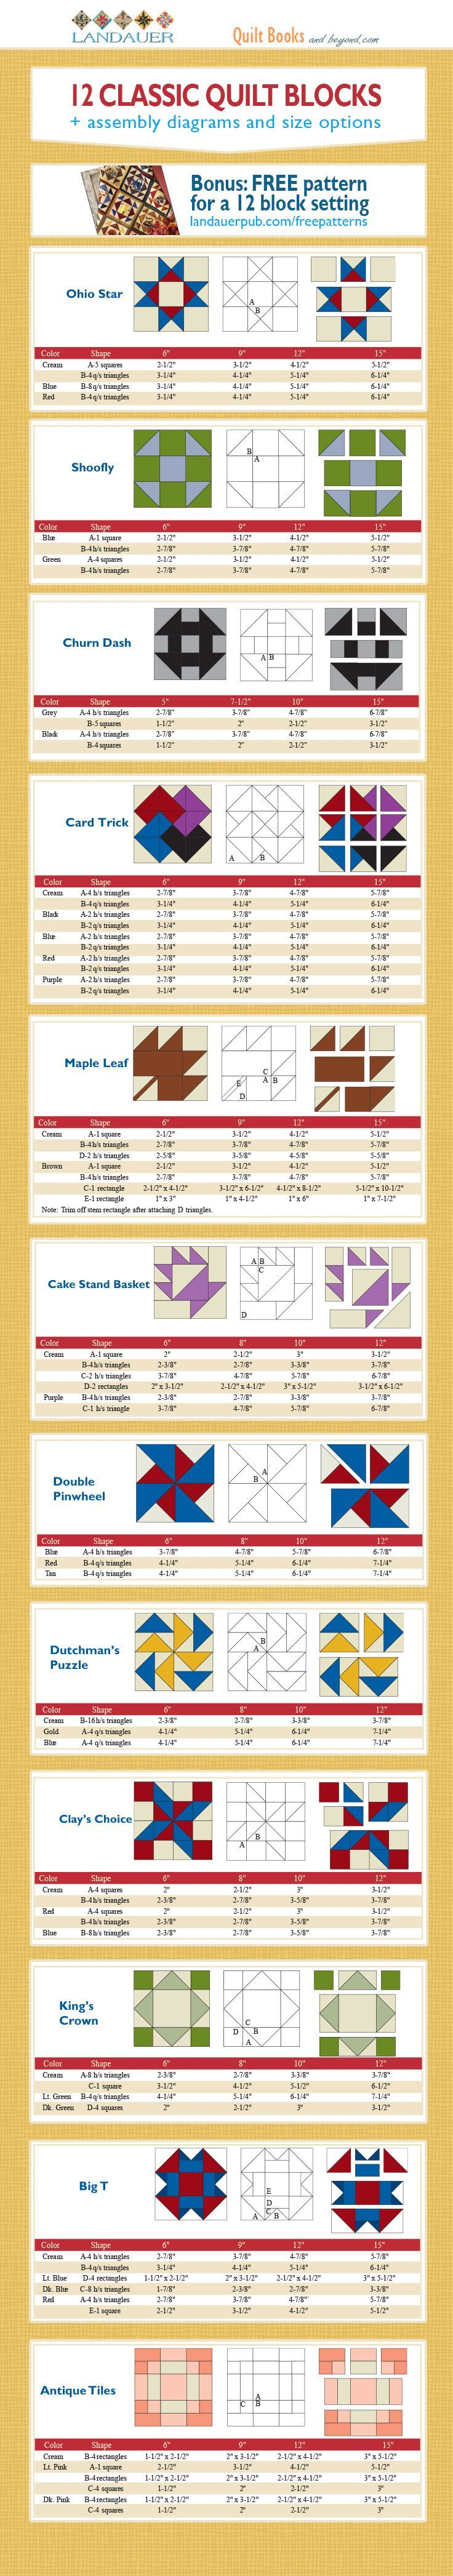 Infographic: 12 Classic Patchwork Quilt Blocks With Diagrams and Cutting Instructions in Multiple Sizes